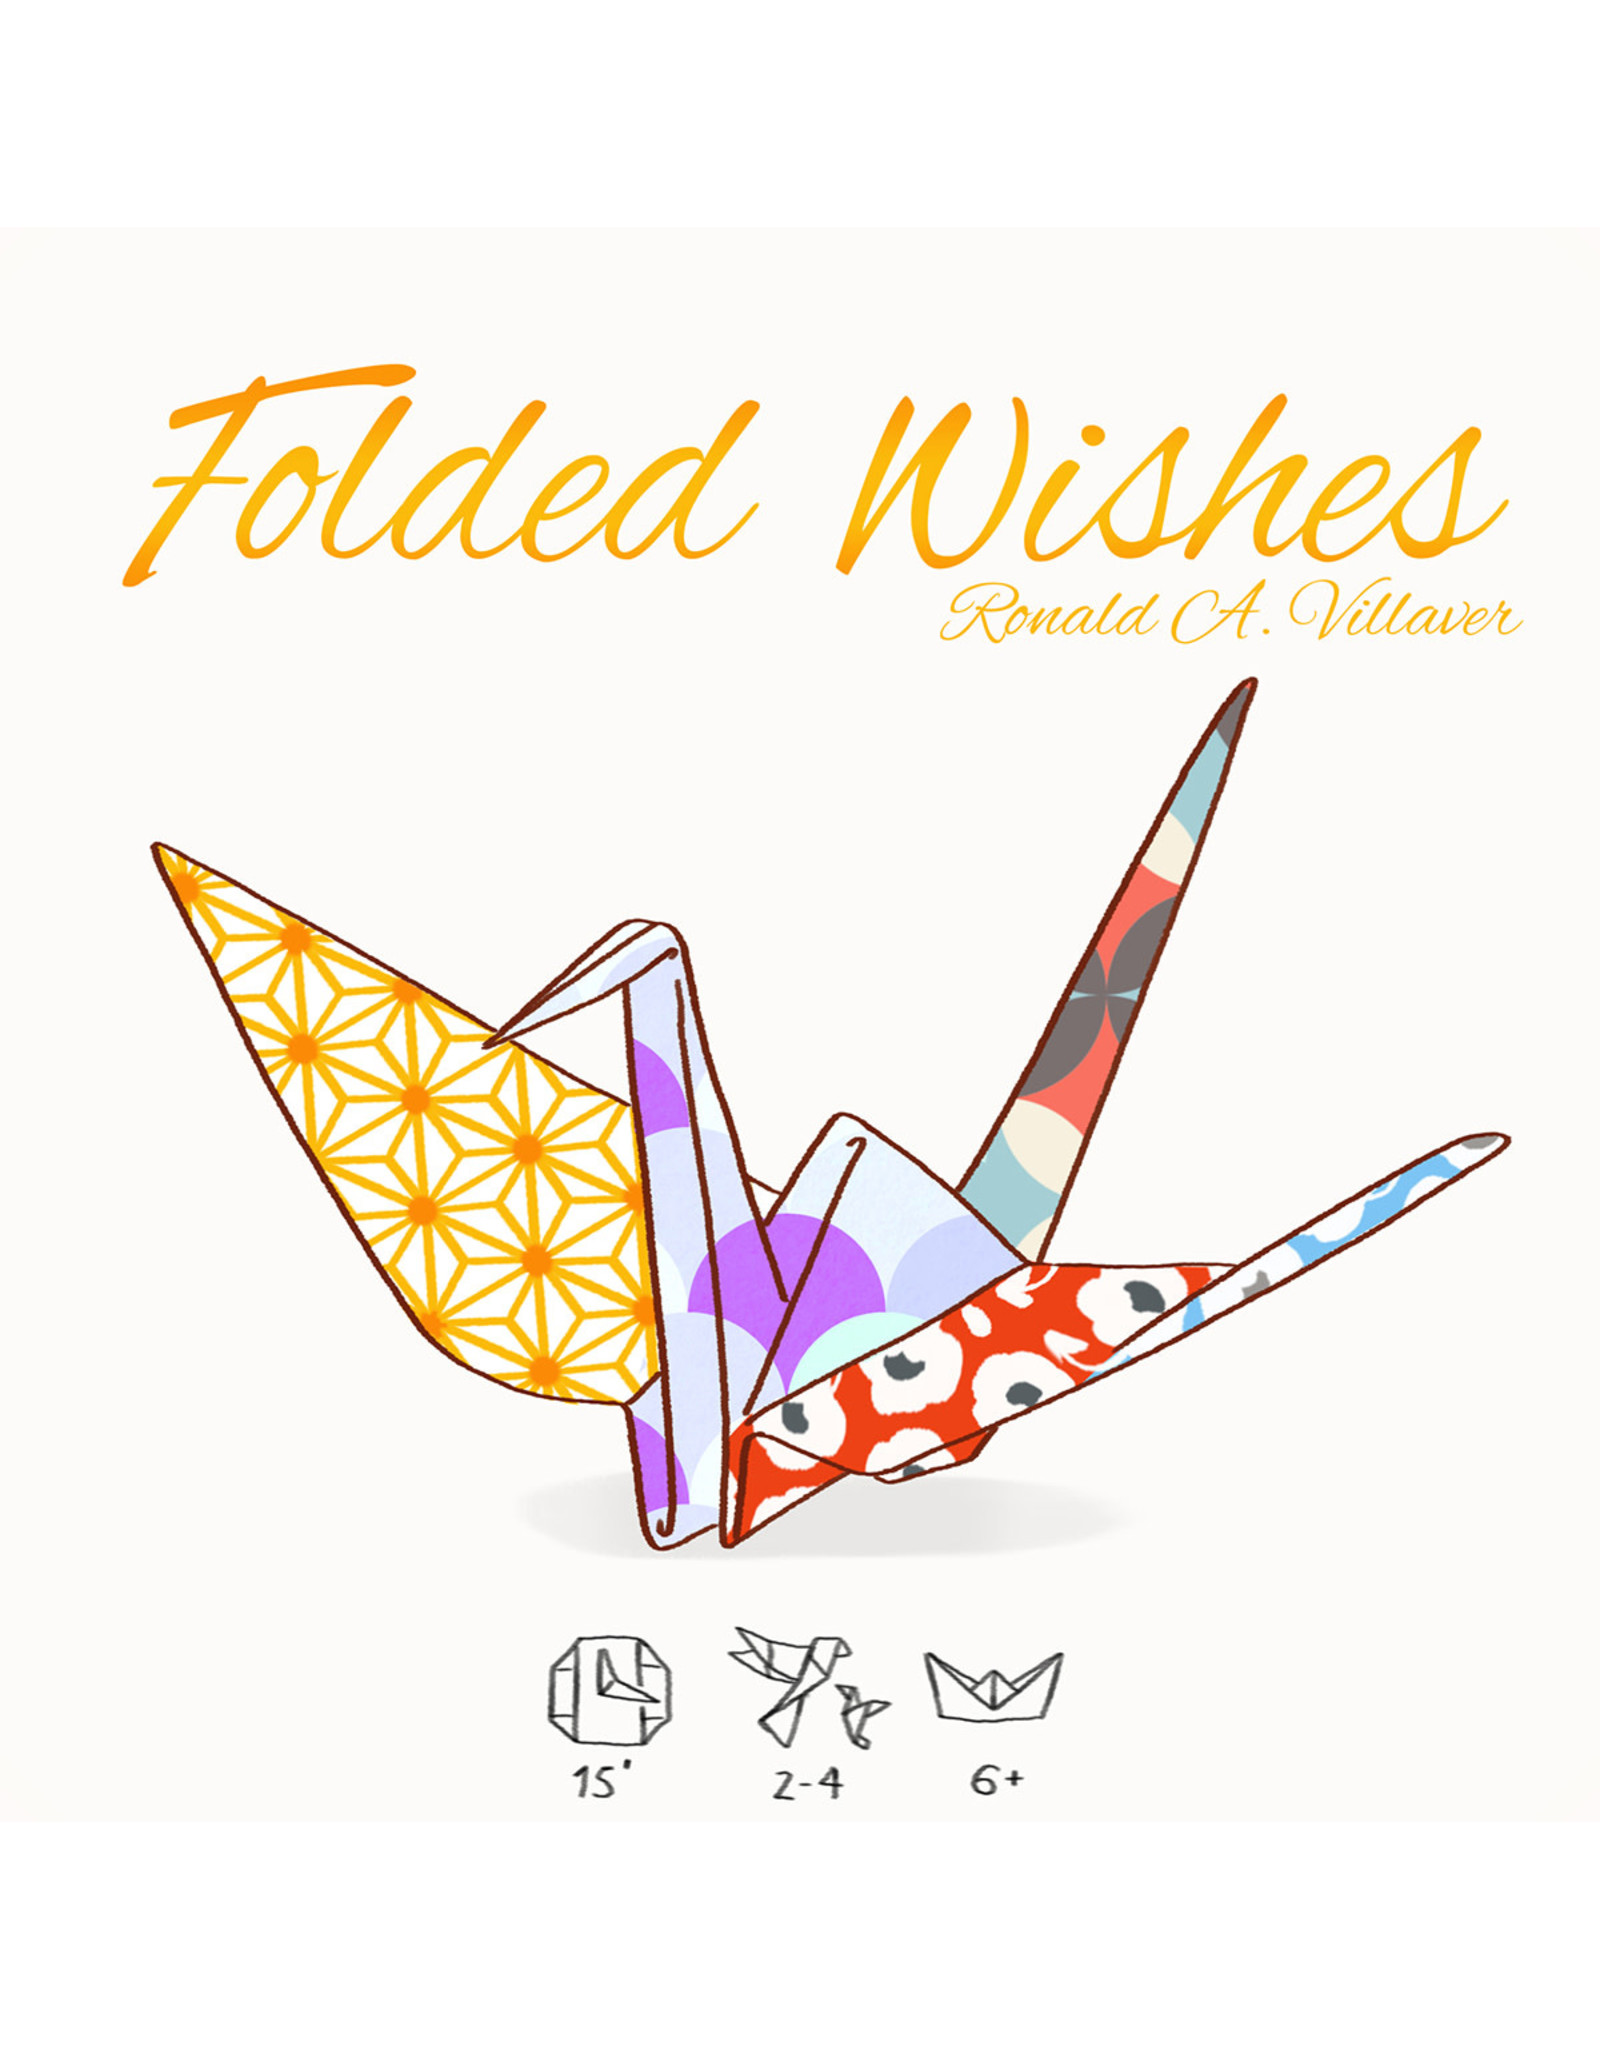 cardlords Folded Wishes